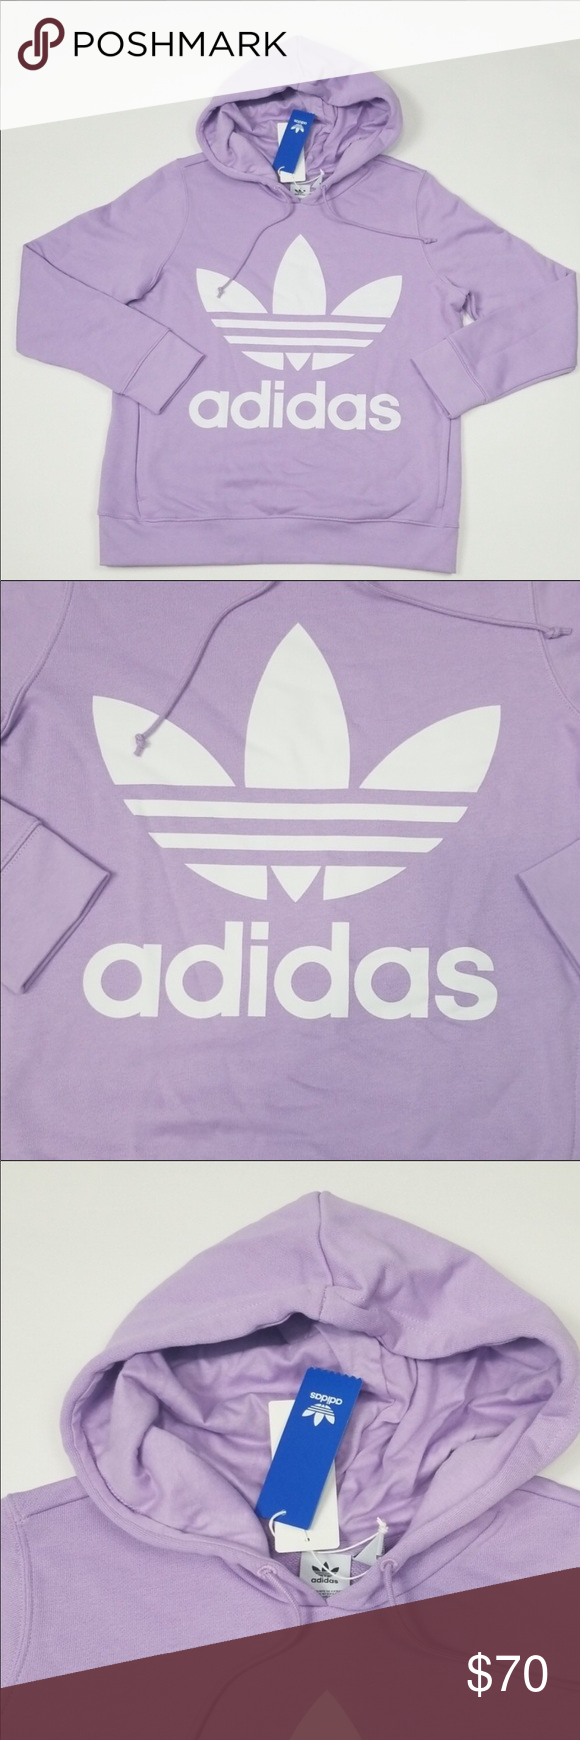 Adidas Originals Large Logo Hoodie New With Tags Lavender Color 2 Side Pockets Adidas Tops Sweatshirts Hoodies Adidas Adidas Originals Hoodies [ 1740 x 580 Pixel ]